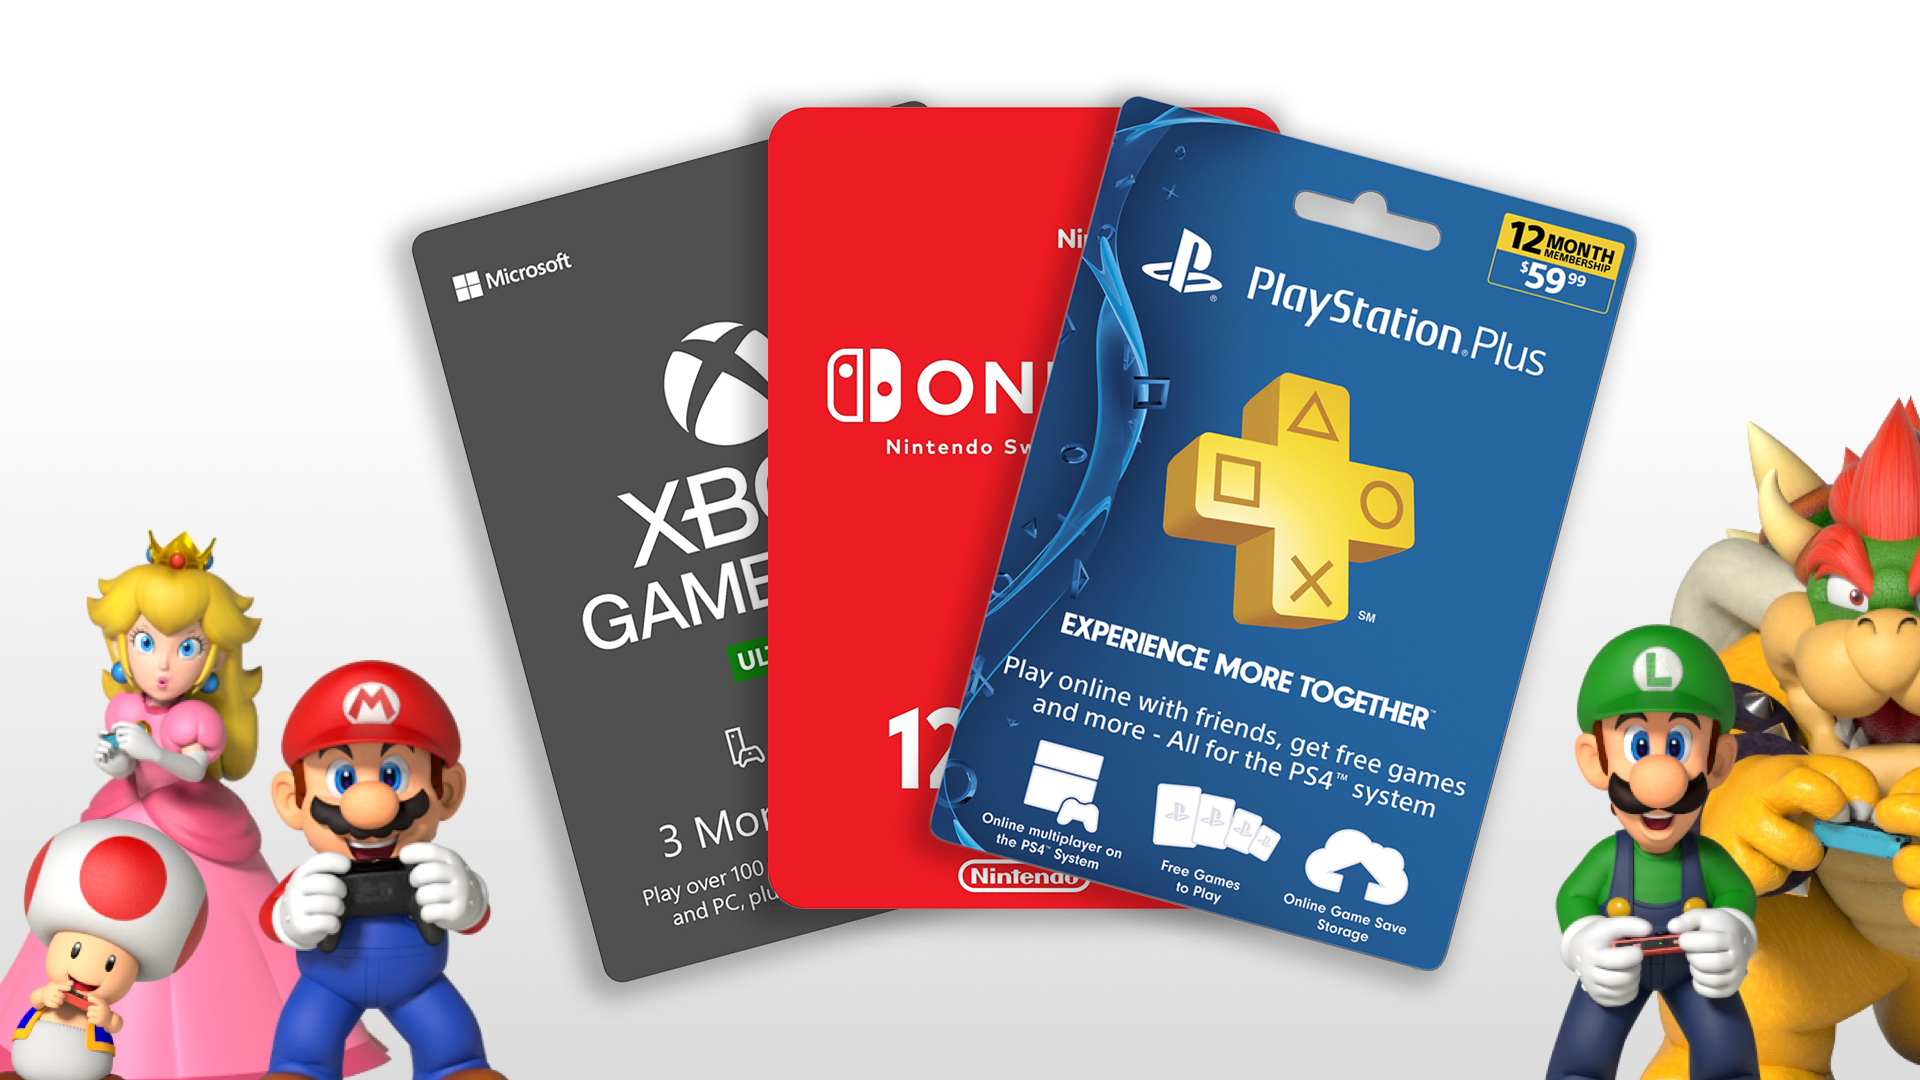 Gifting a Game Console? Don't Forget the Subscription!